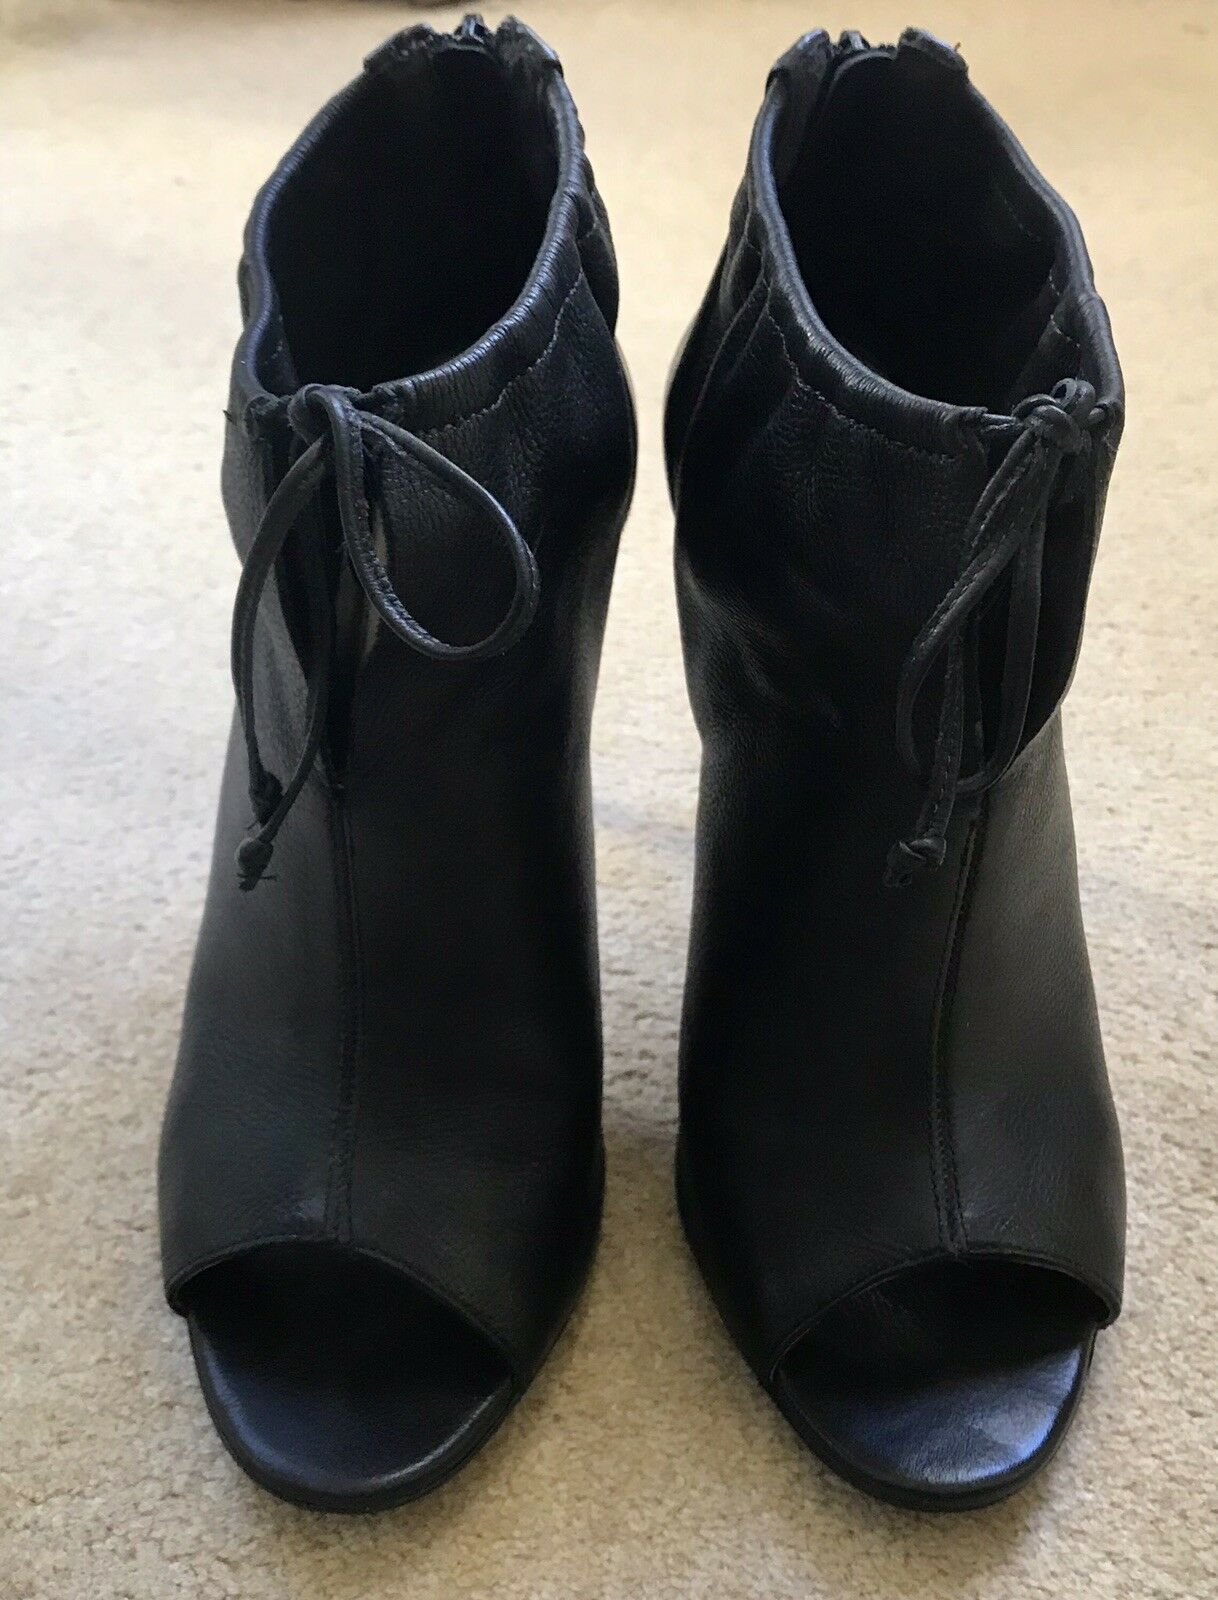 Aldo Black Leather Ankle High Heel shoes, Size 8 (41)